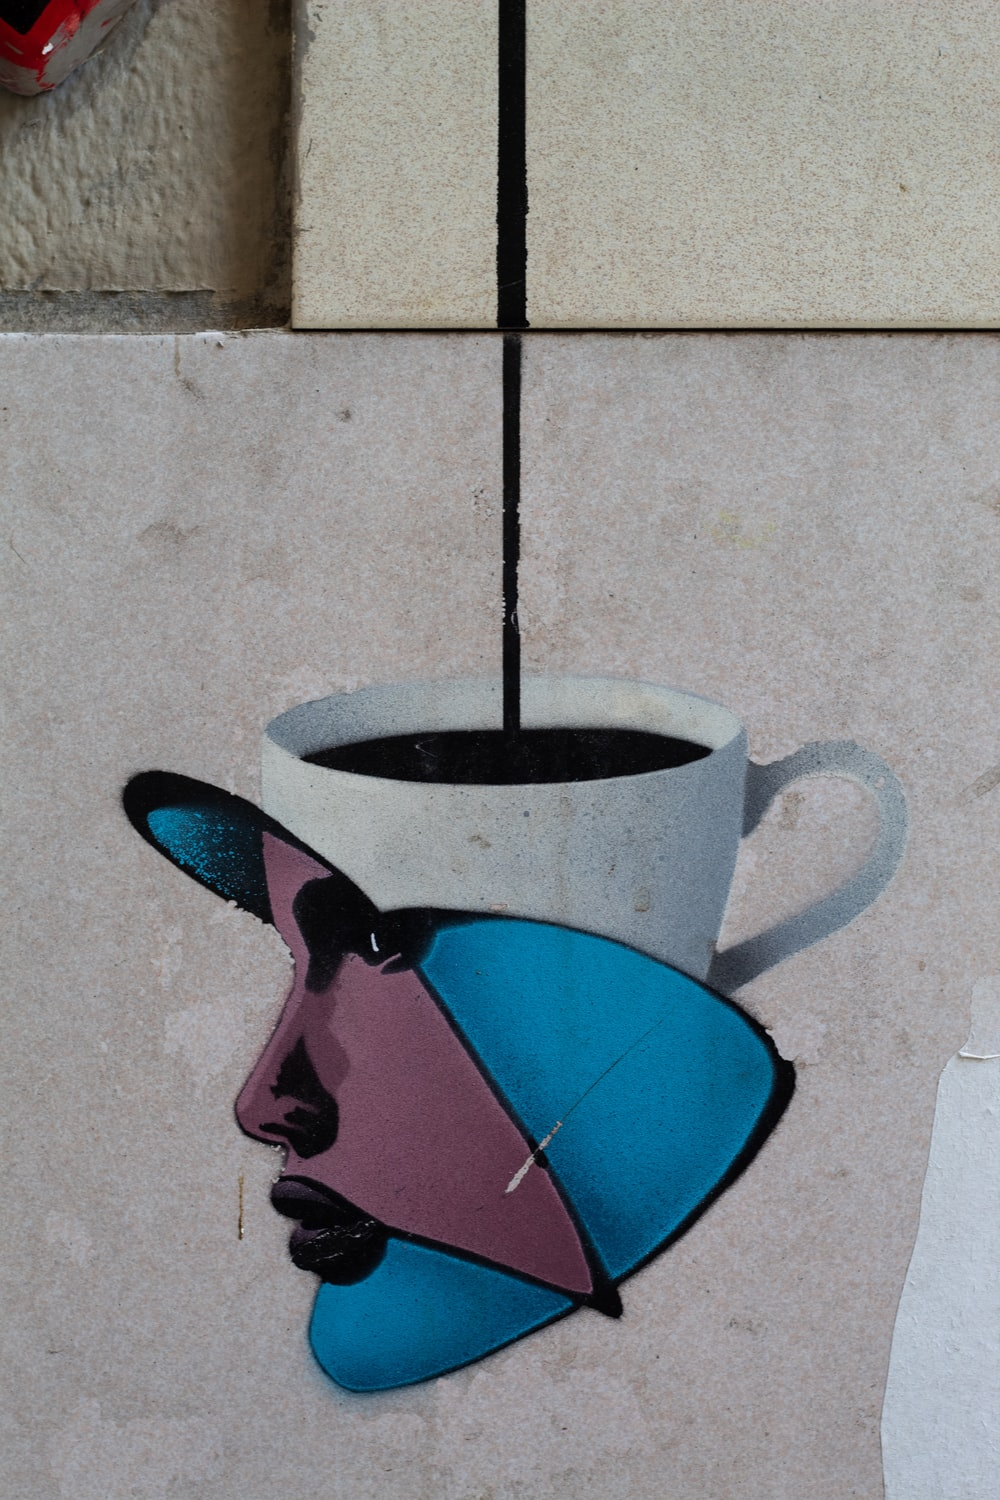 white, blue, and maroon woman's face themed mug